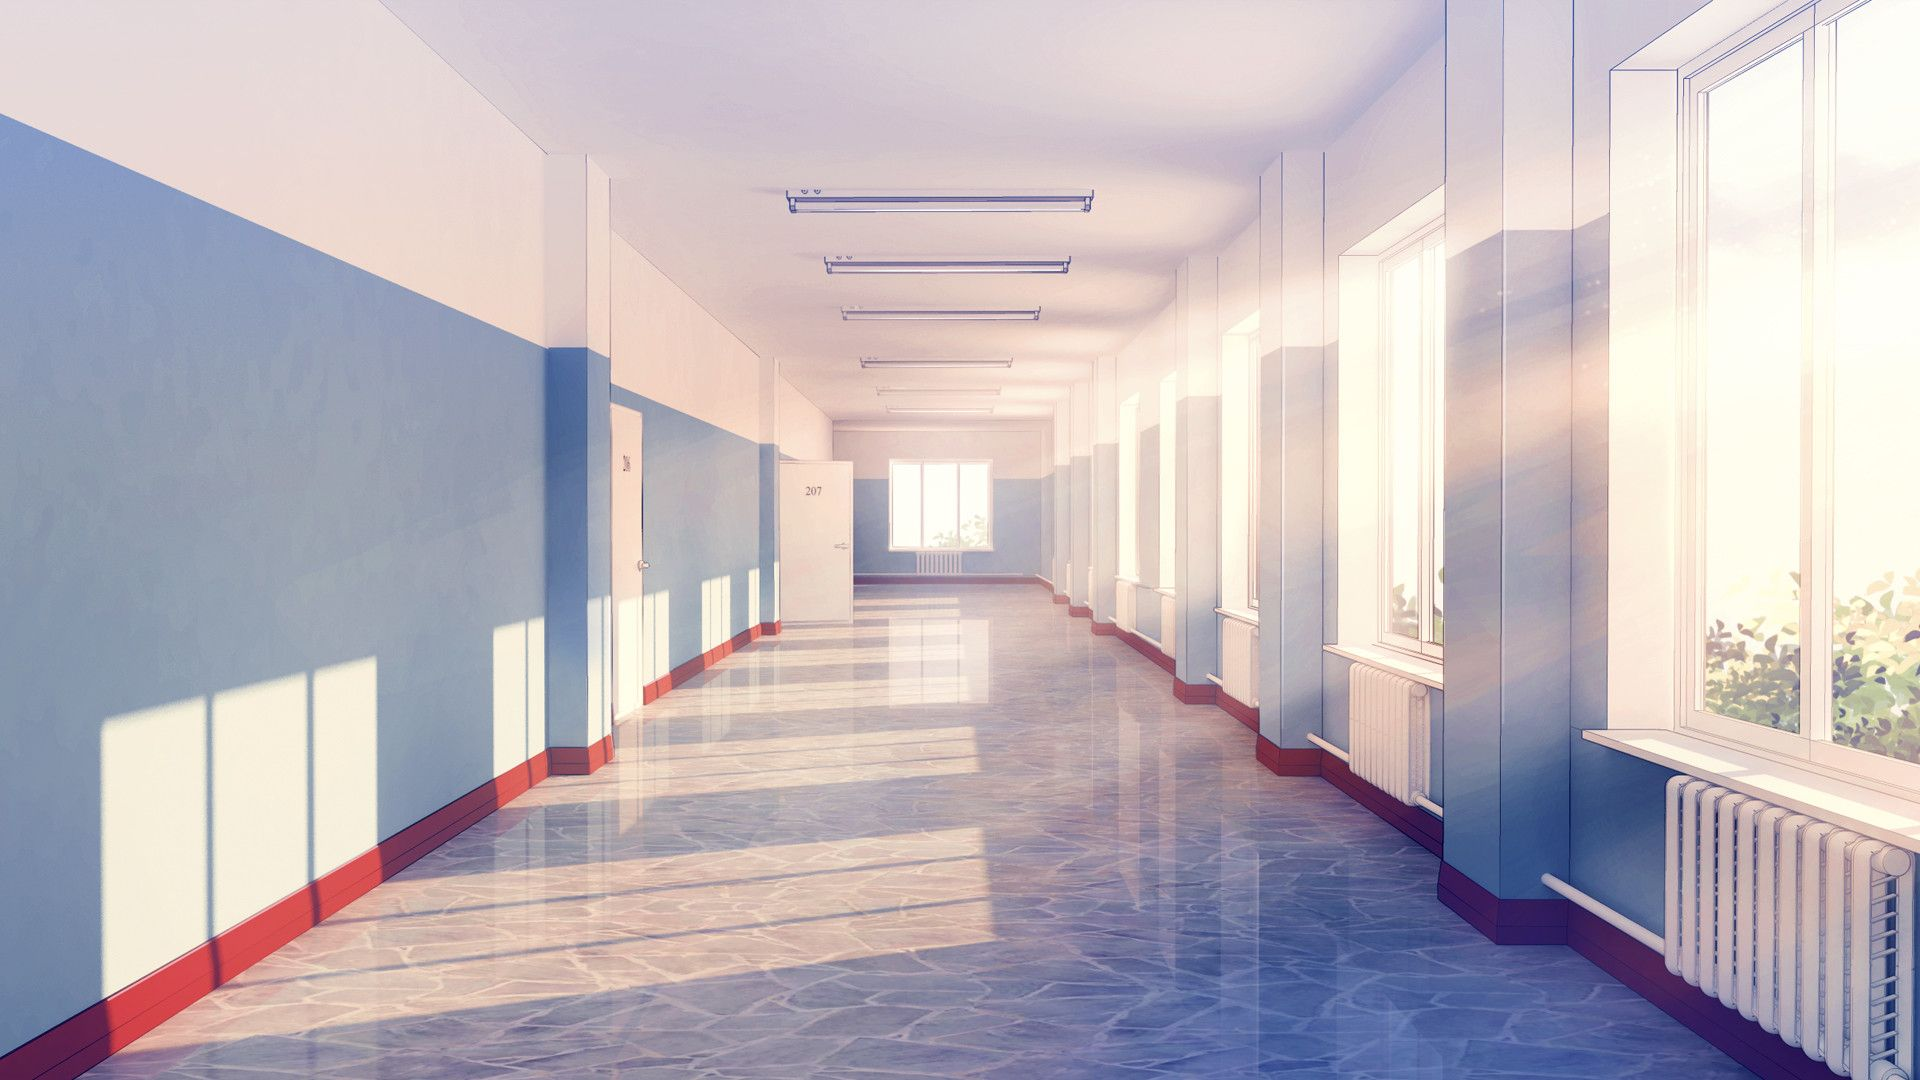 Pin By Angela Matrisciano On Backgrounds In 2020 School Hallways